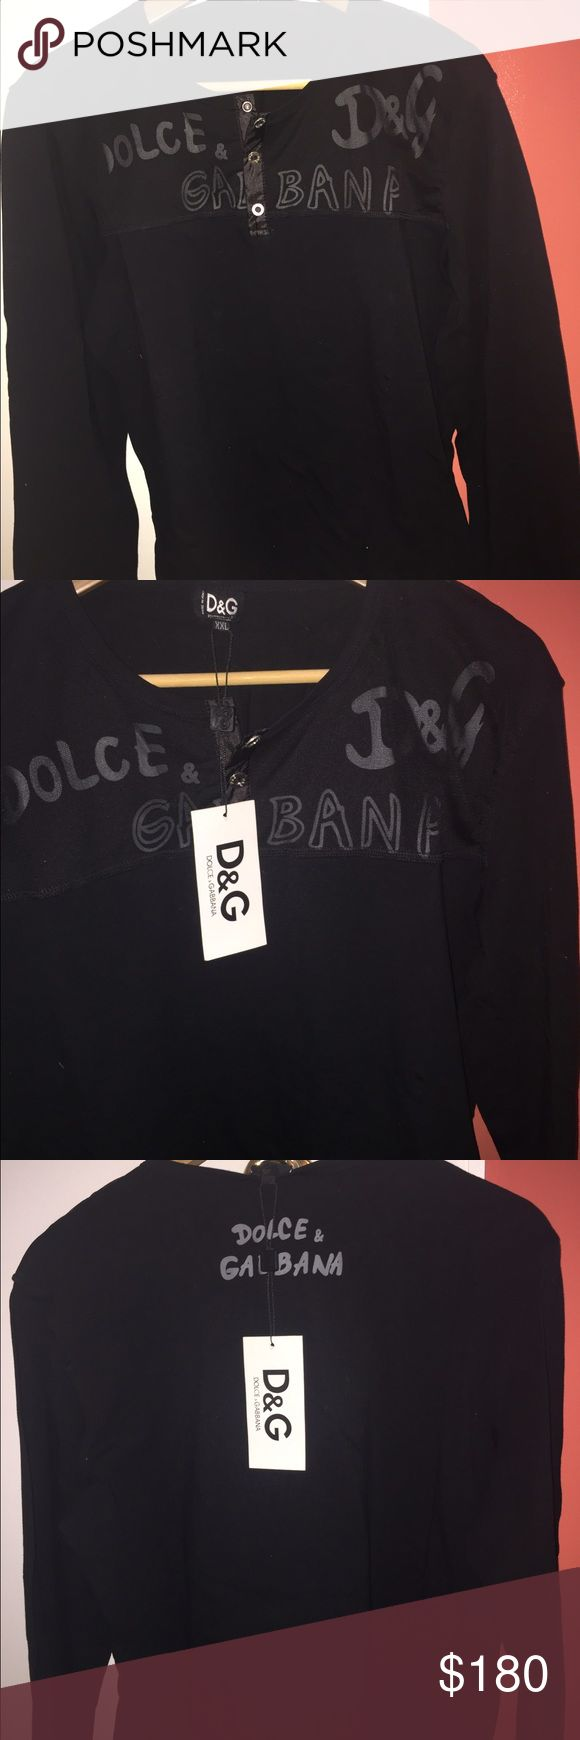 Dolce and gabbana men's shirt Brand new dolce and gabbana men's long sleeve shirt. Price reflects authenticity. Fits like XL Dolce & Gabbana Shirts Tees - Long Sleeve